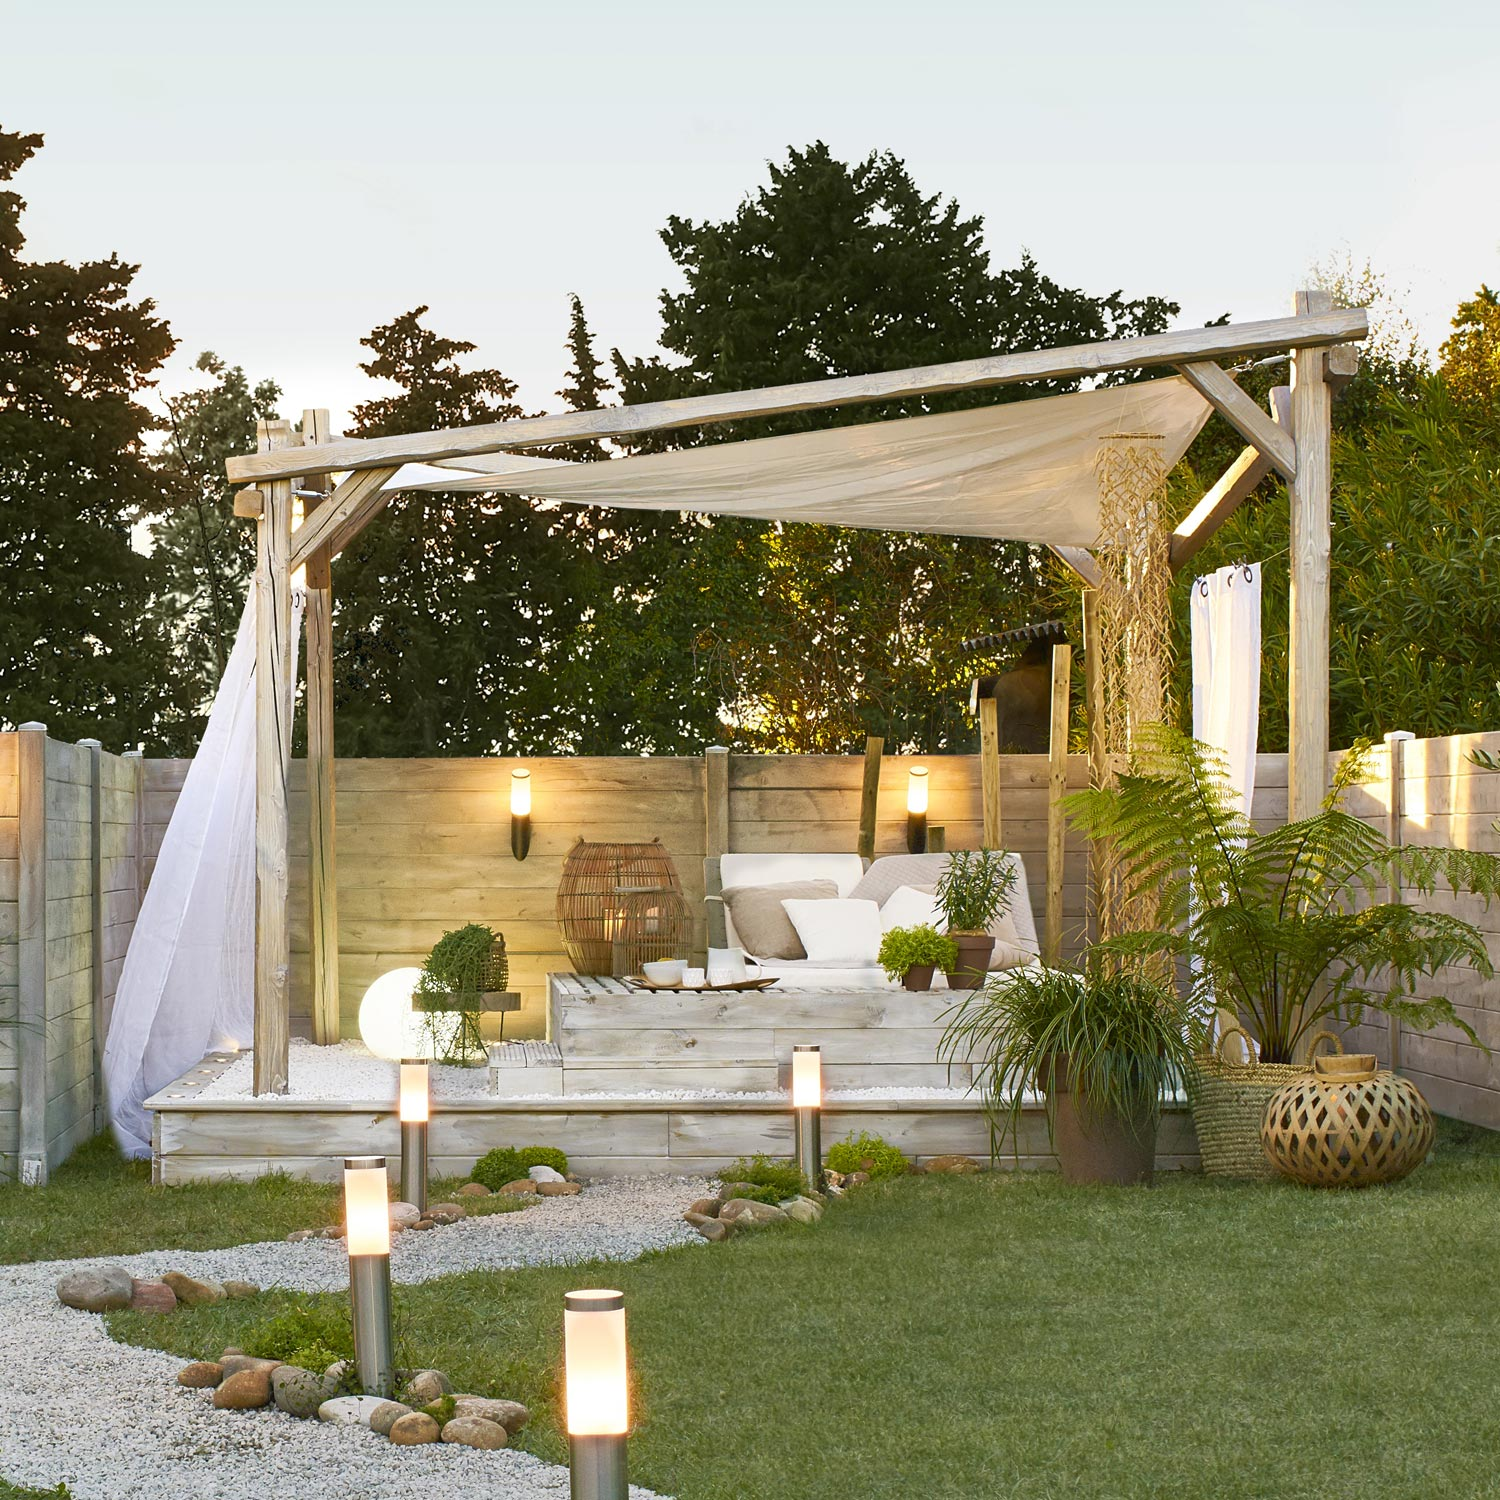 castorama pergola aluminium attractive pergola alu castorama with castorama pergola aluminium. Black Bedroom Furniture Sets. Home Design Ideas